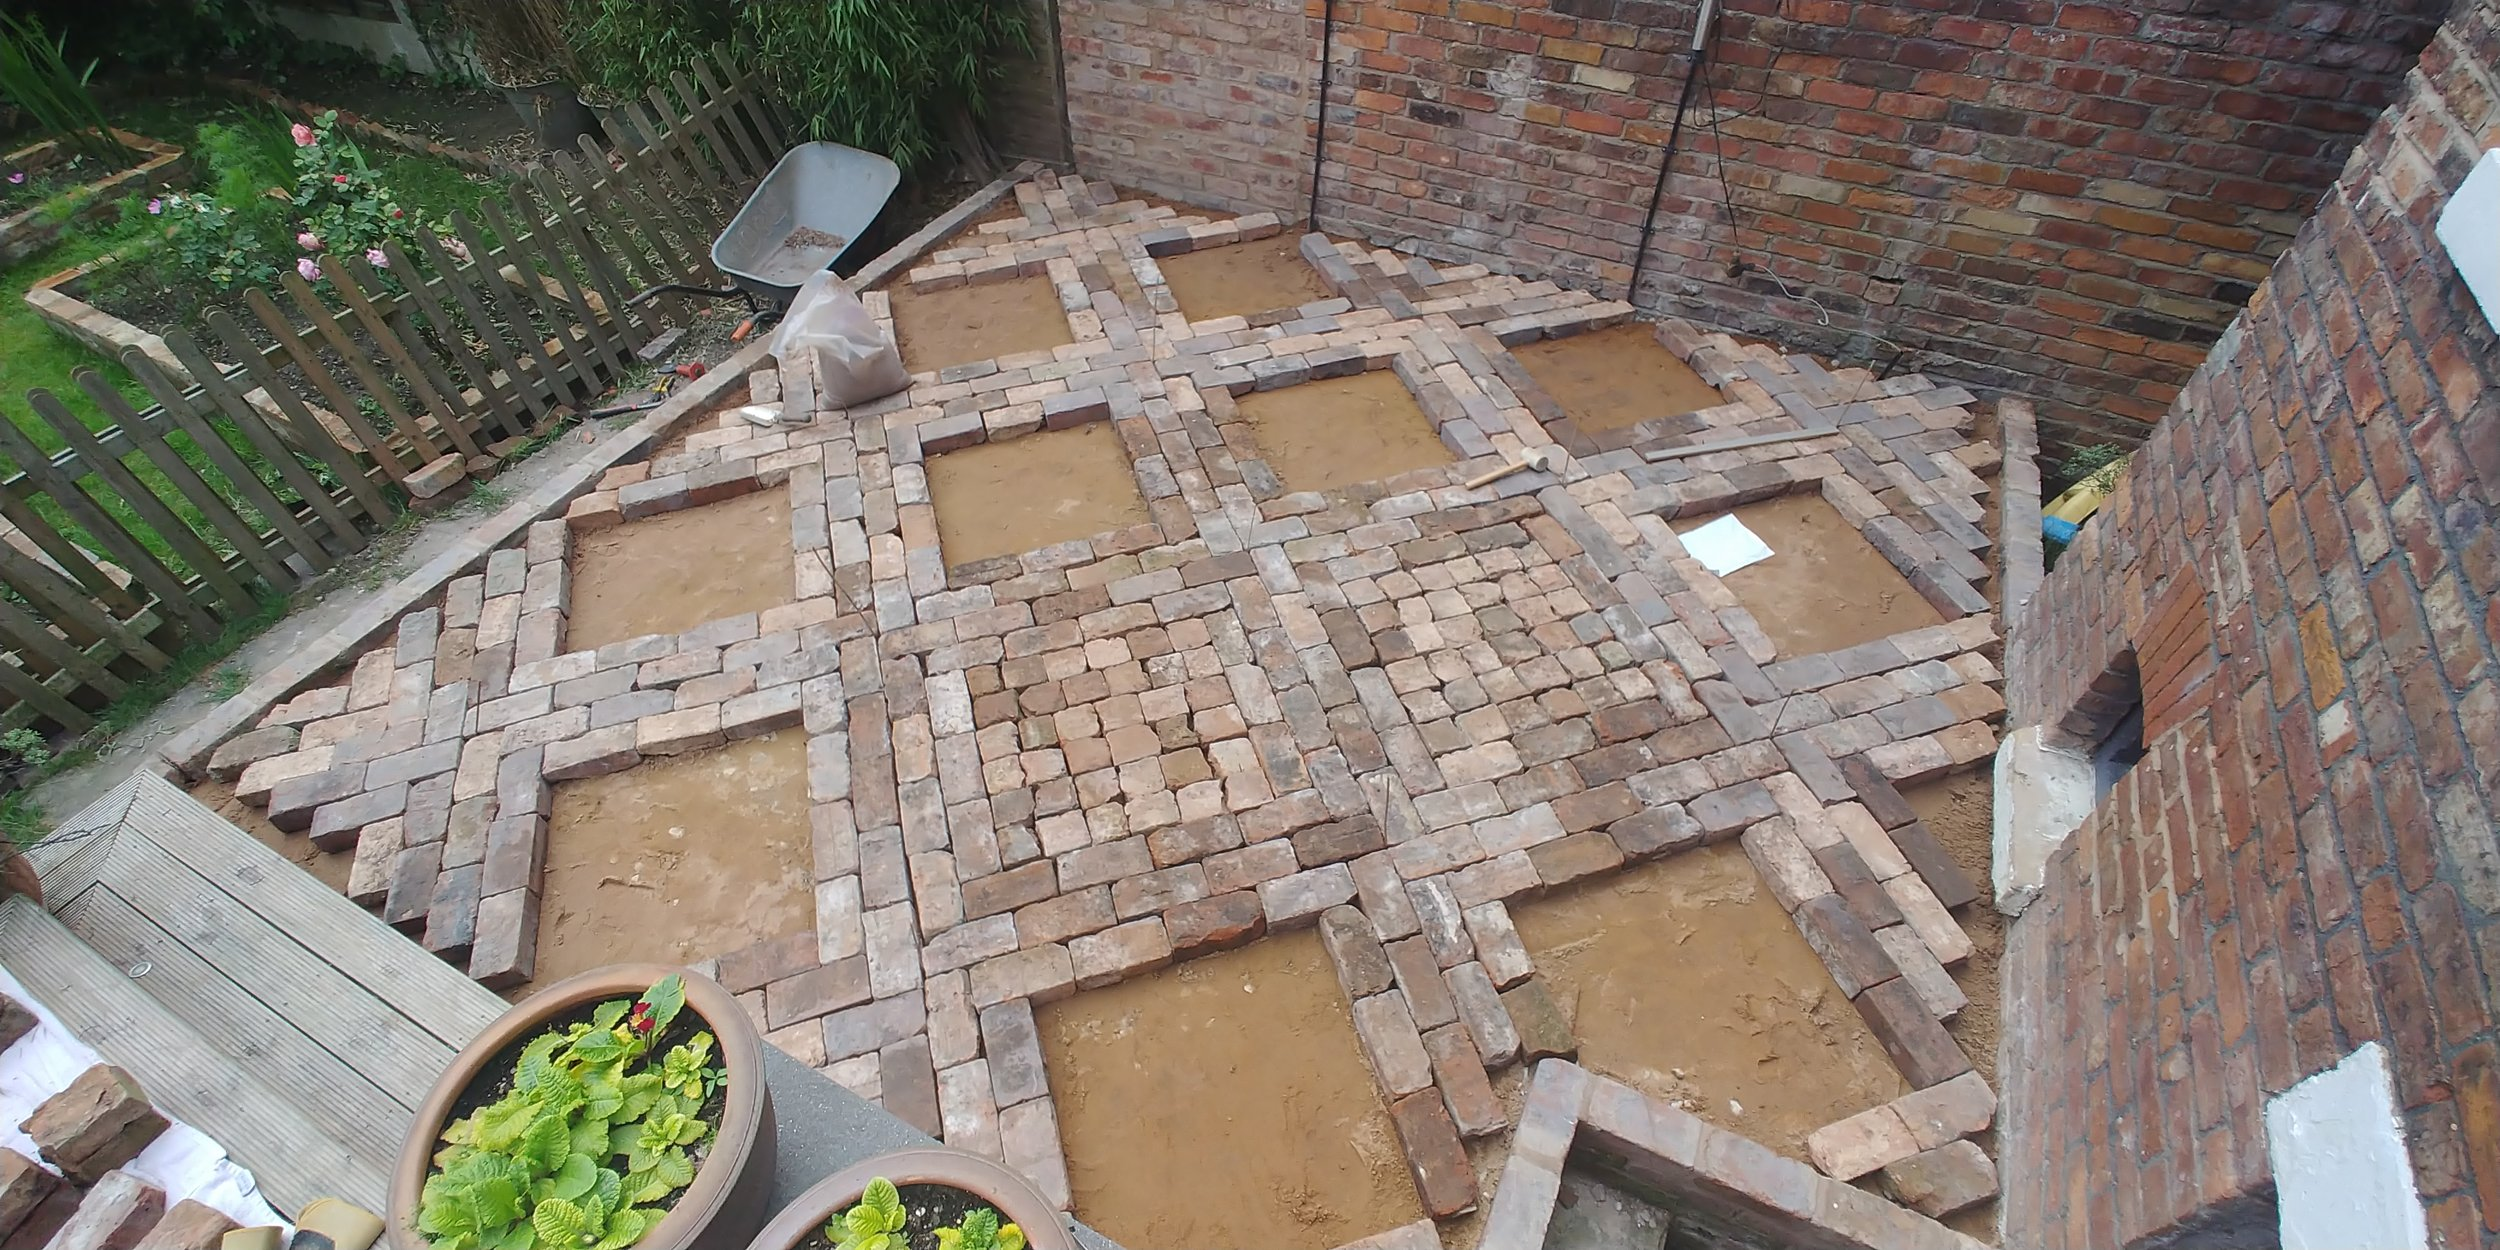 I then realised it was easier to lay the walkways and leave the cobbled squares open.